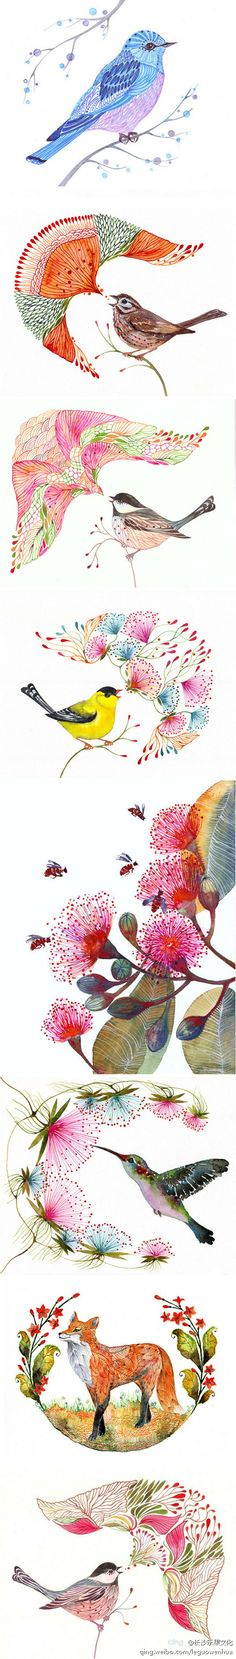 Ola Liola's animal watercolor paintings & illustrations by TevaKiwi These pretty botanical & animal images could make very cute tattoos. it's hard Art And Illustration, Illustrations, Painting & Drawing, Watercolor Paintings, Bird Paintings, Watercolor Tattoo, Watercolor Animals, Watercolor Flowers, Grafik Design